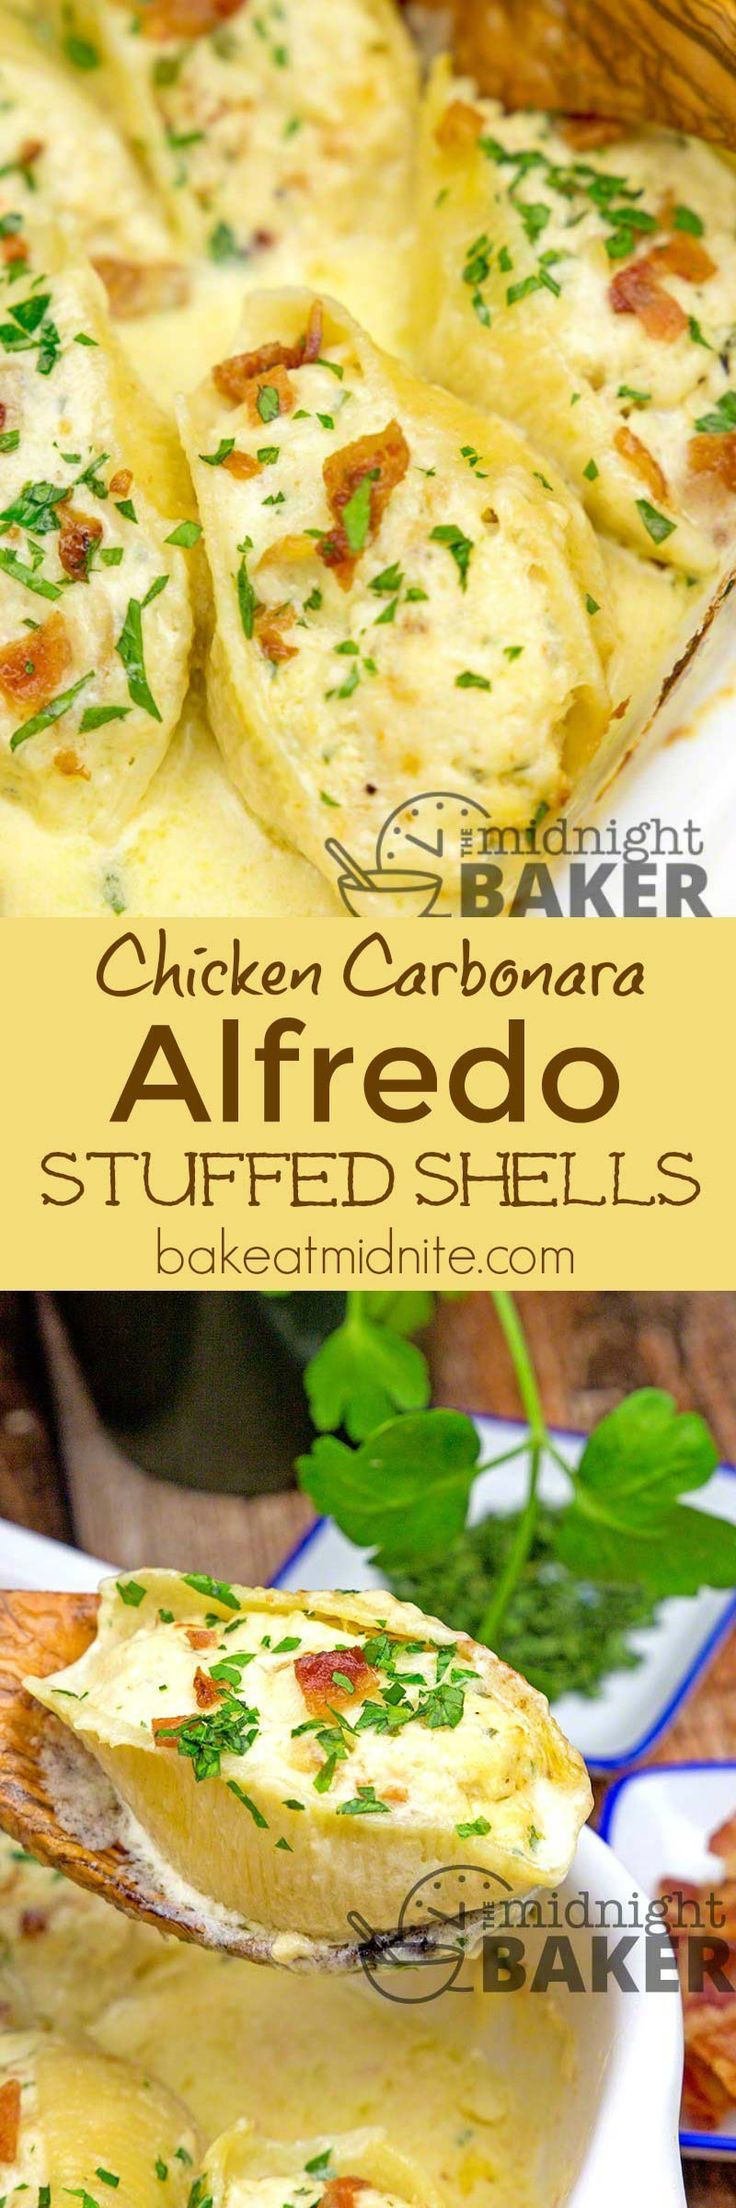 Delicious shells stuffed with a chicken carbonara flavored stuffing and baked in a rich cheesy alfredo sauce